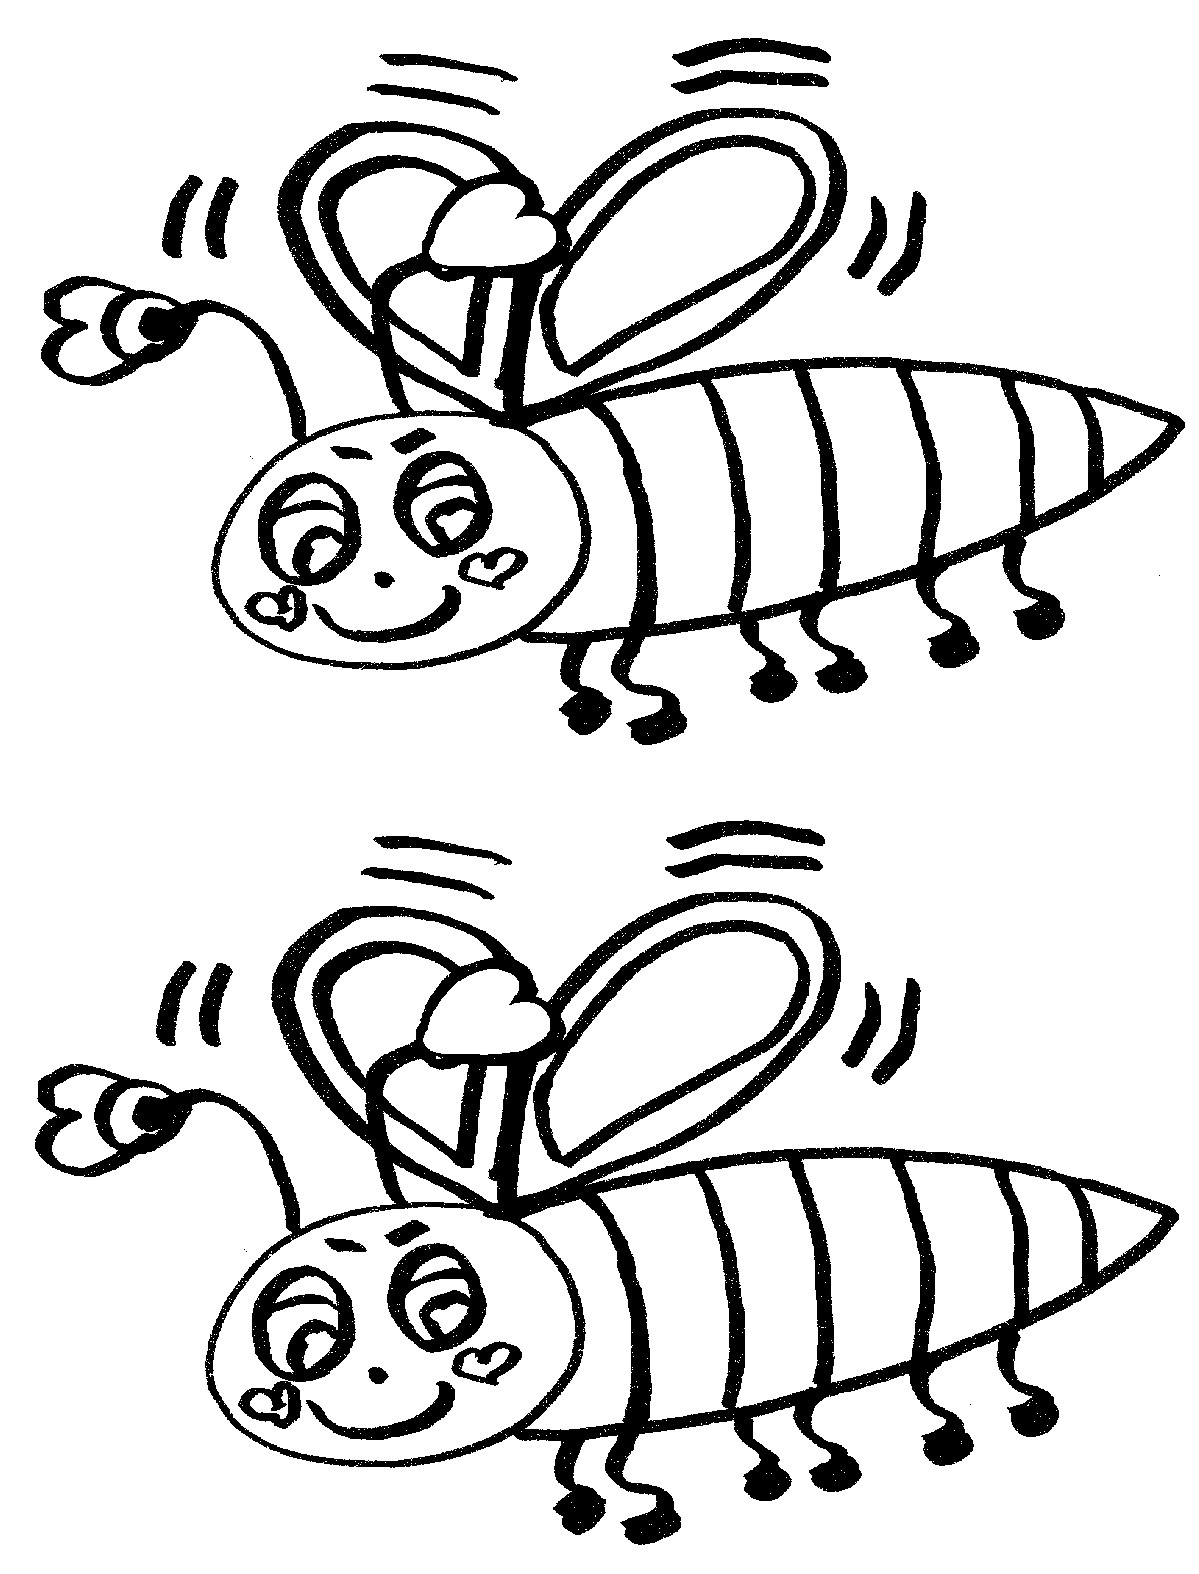 Clipart of lightning bug black and white jpg royalty free stock Free Firefly Cliparts, Download Free Clip Art, Free Clip Art on ... jpg royalty free stock